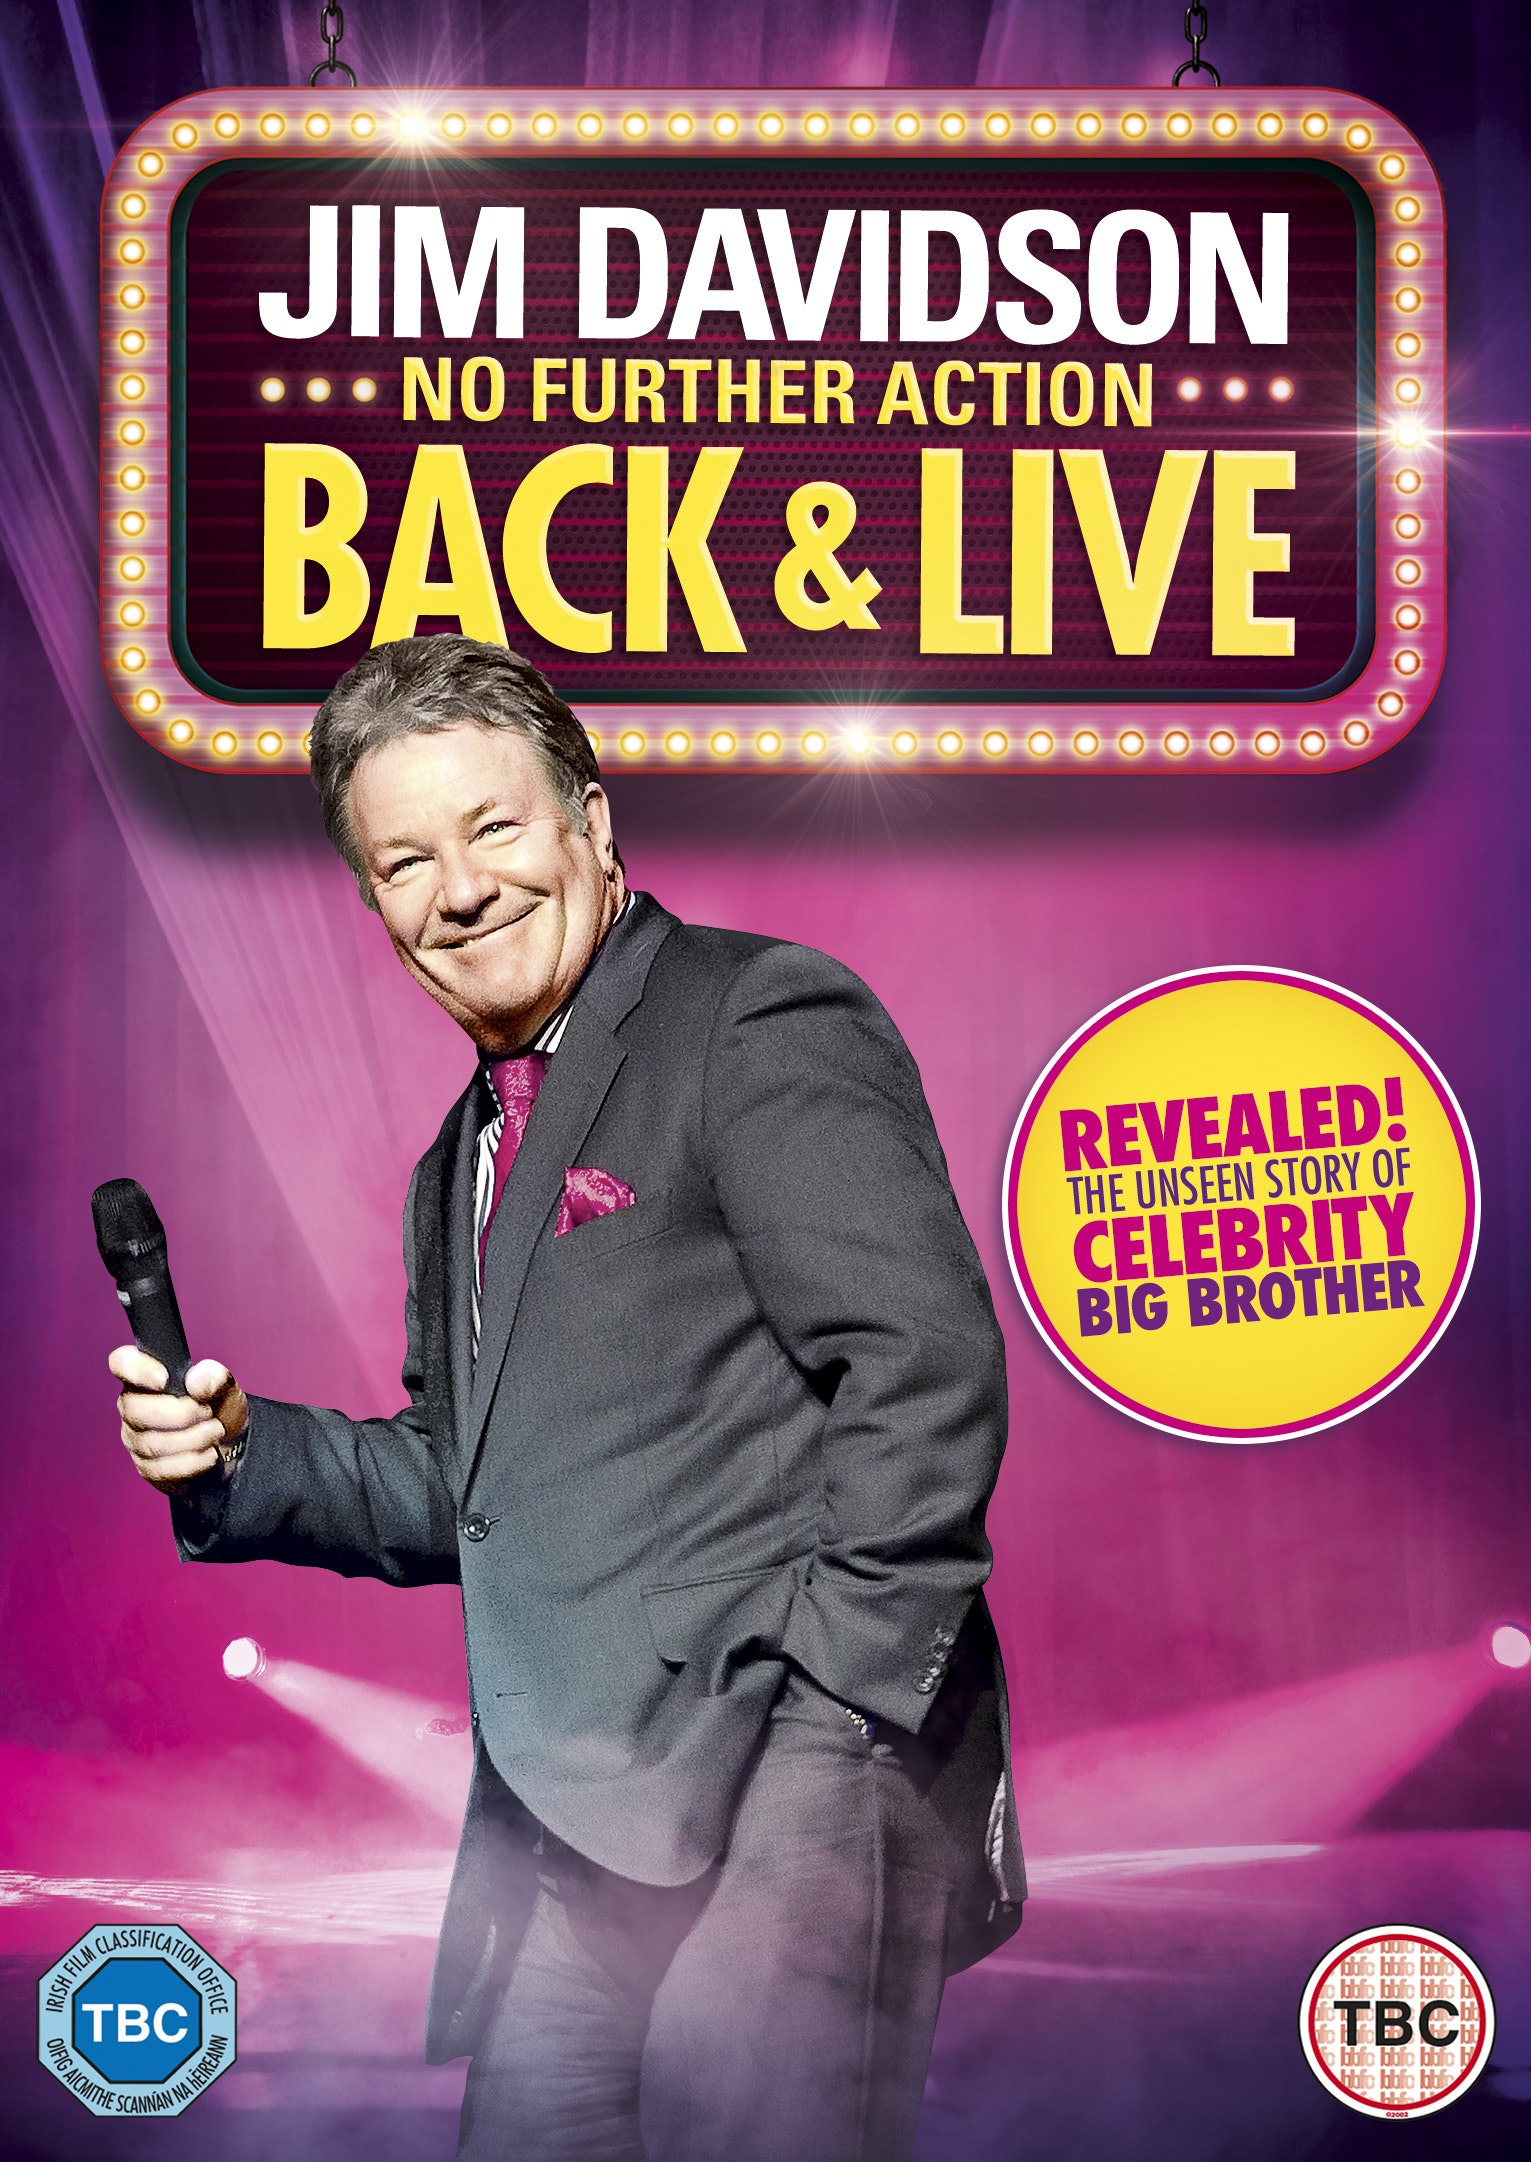 Jim Davidson Back & Live  sweepstakes